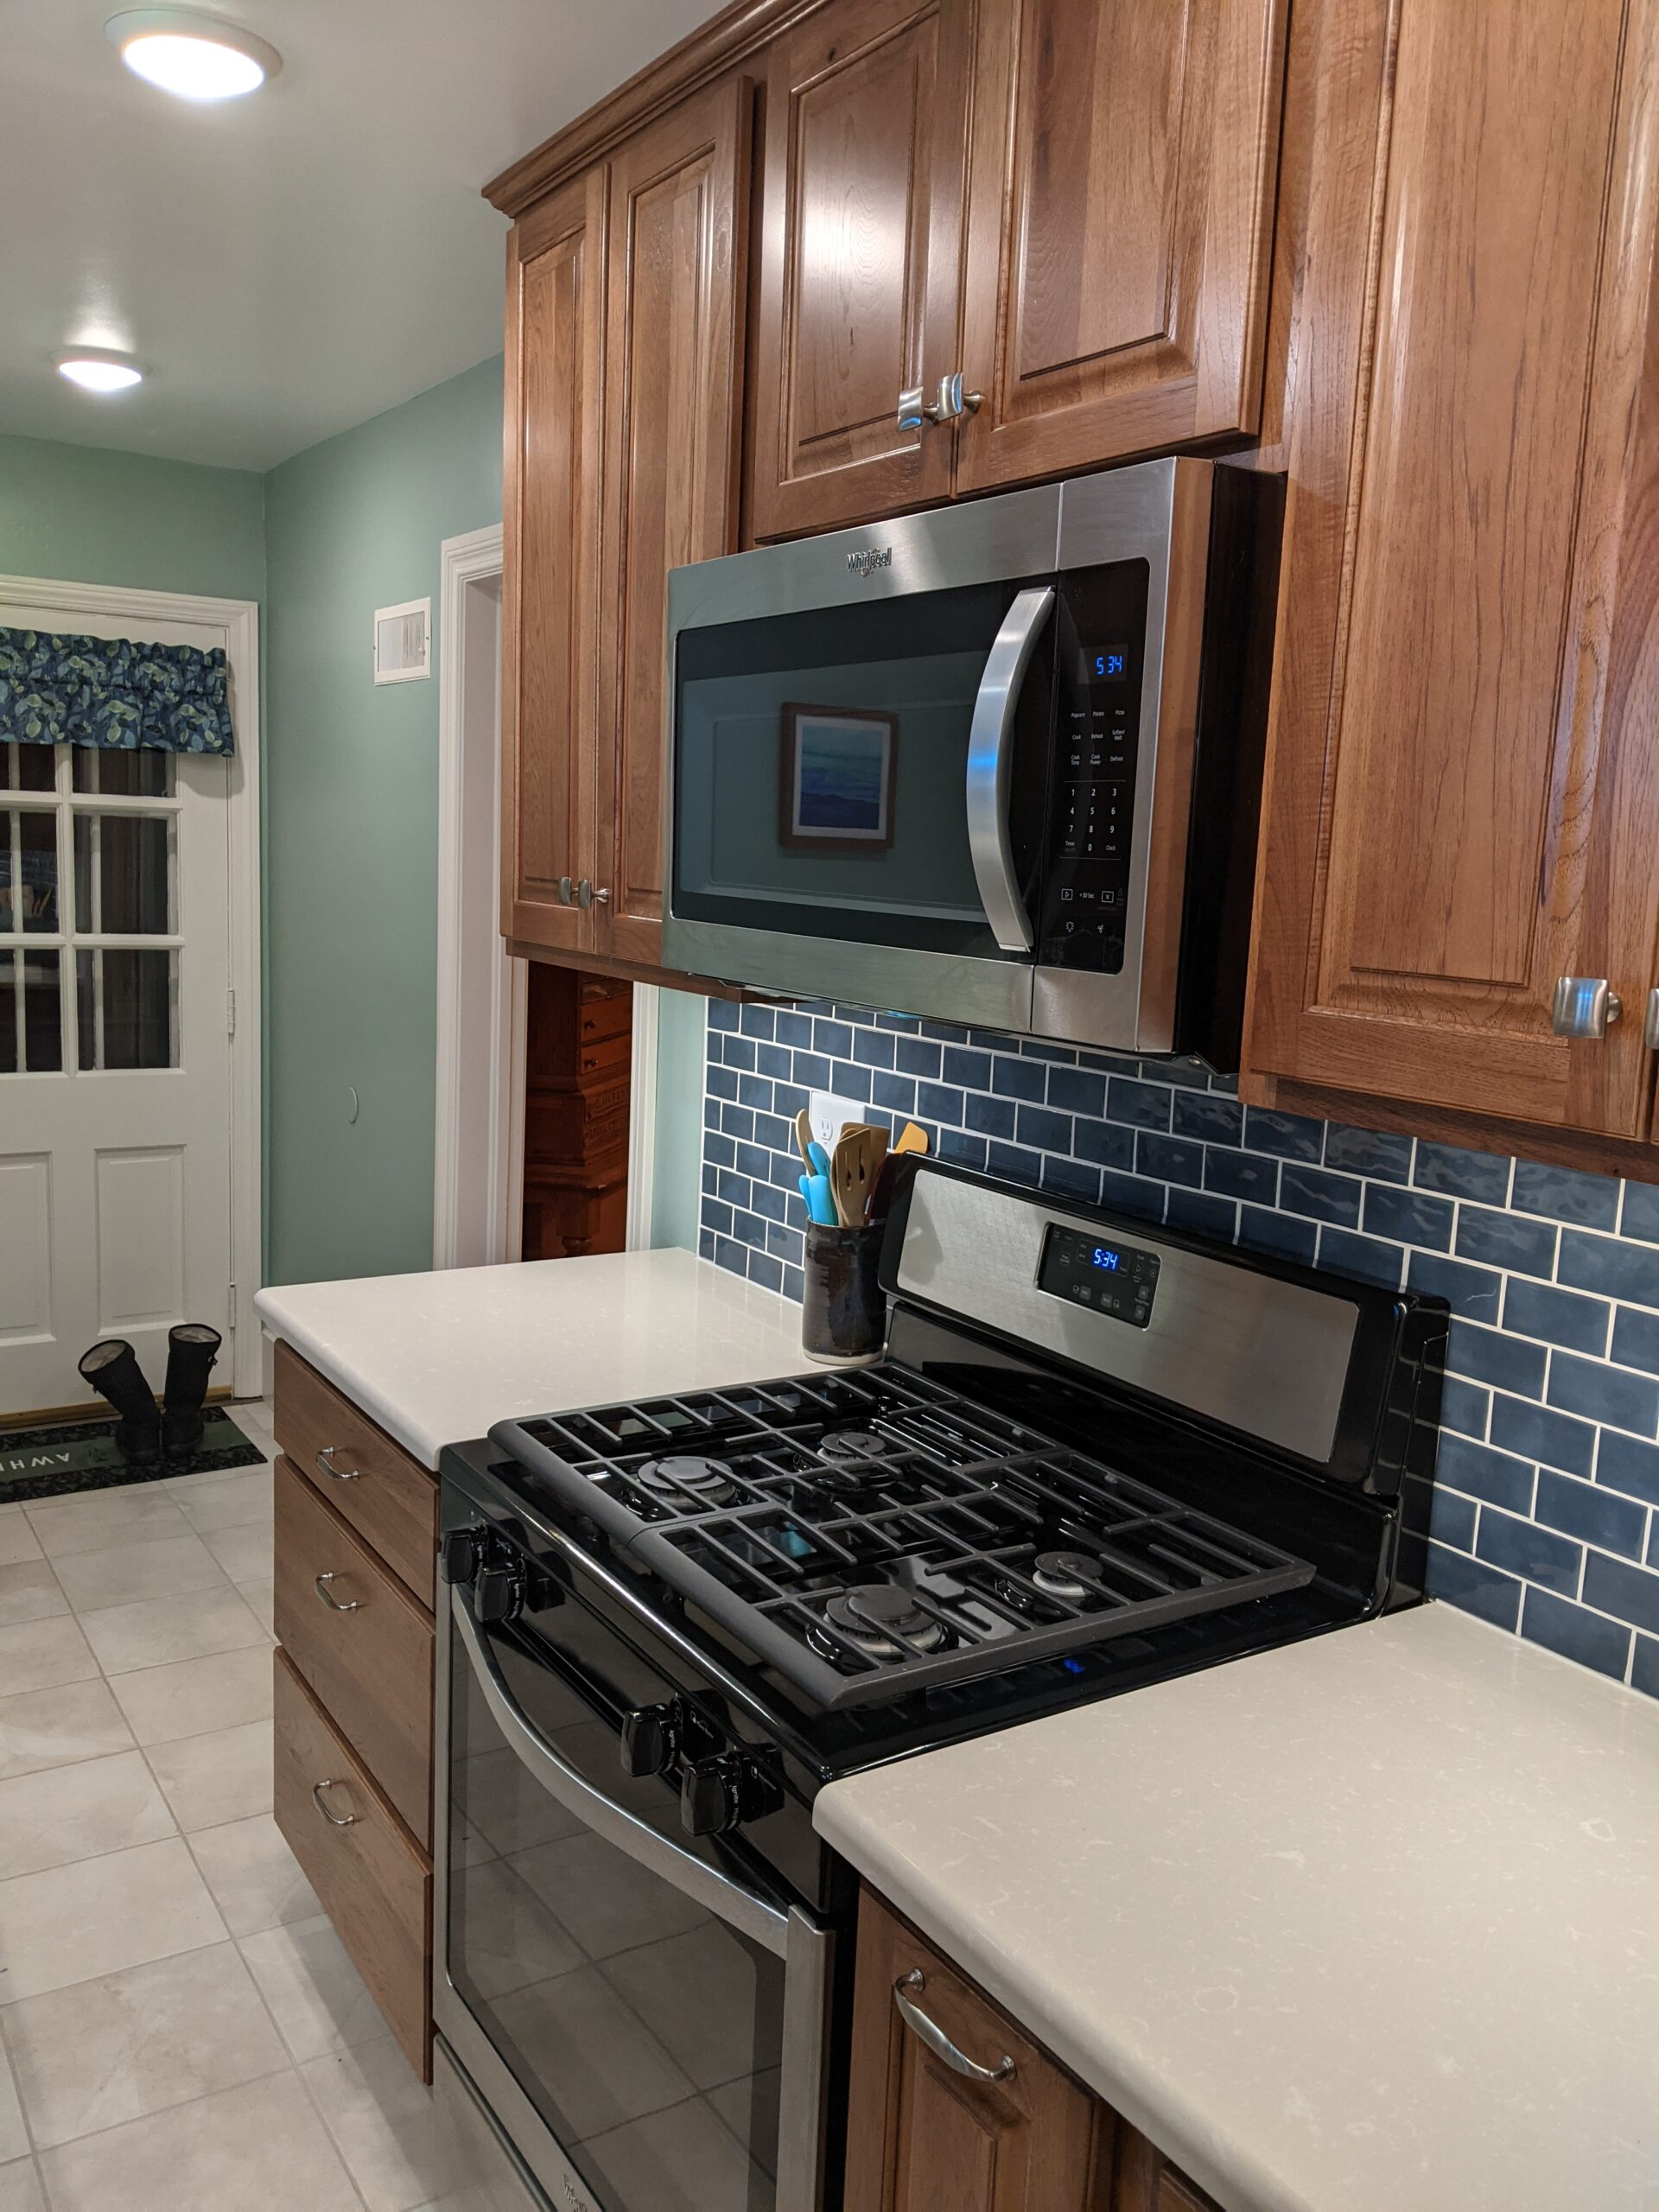 Shows the new stove area with the tiled backsplash and countertop space around the stove